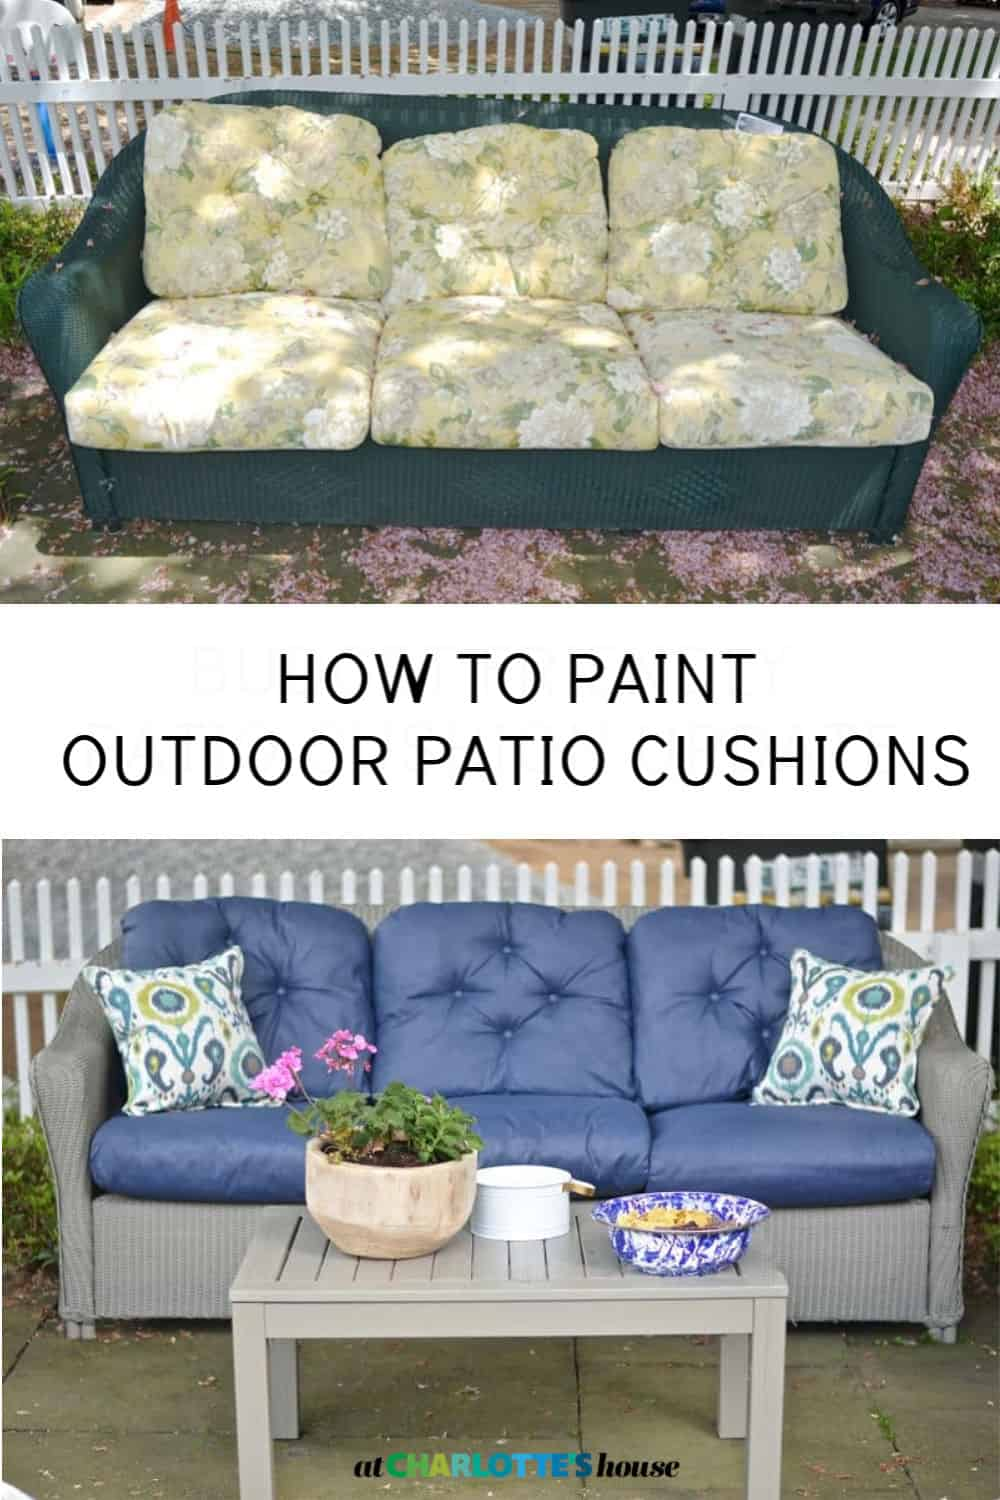 How To Paint Patio Cushions At Charlotte S House